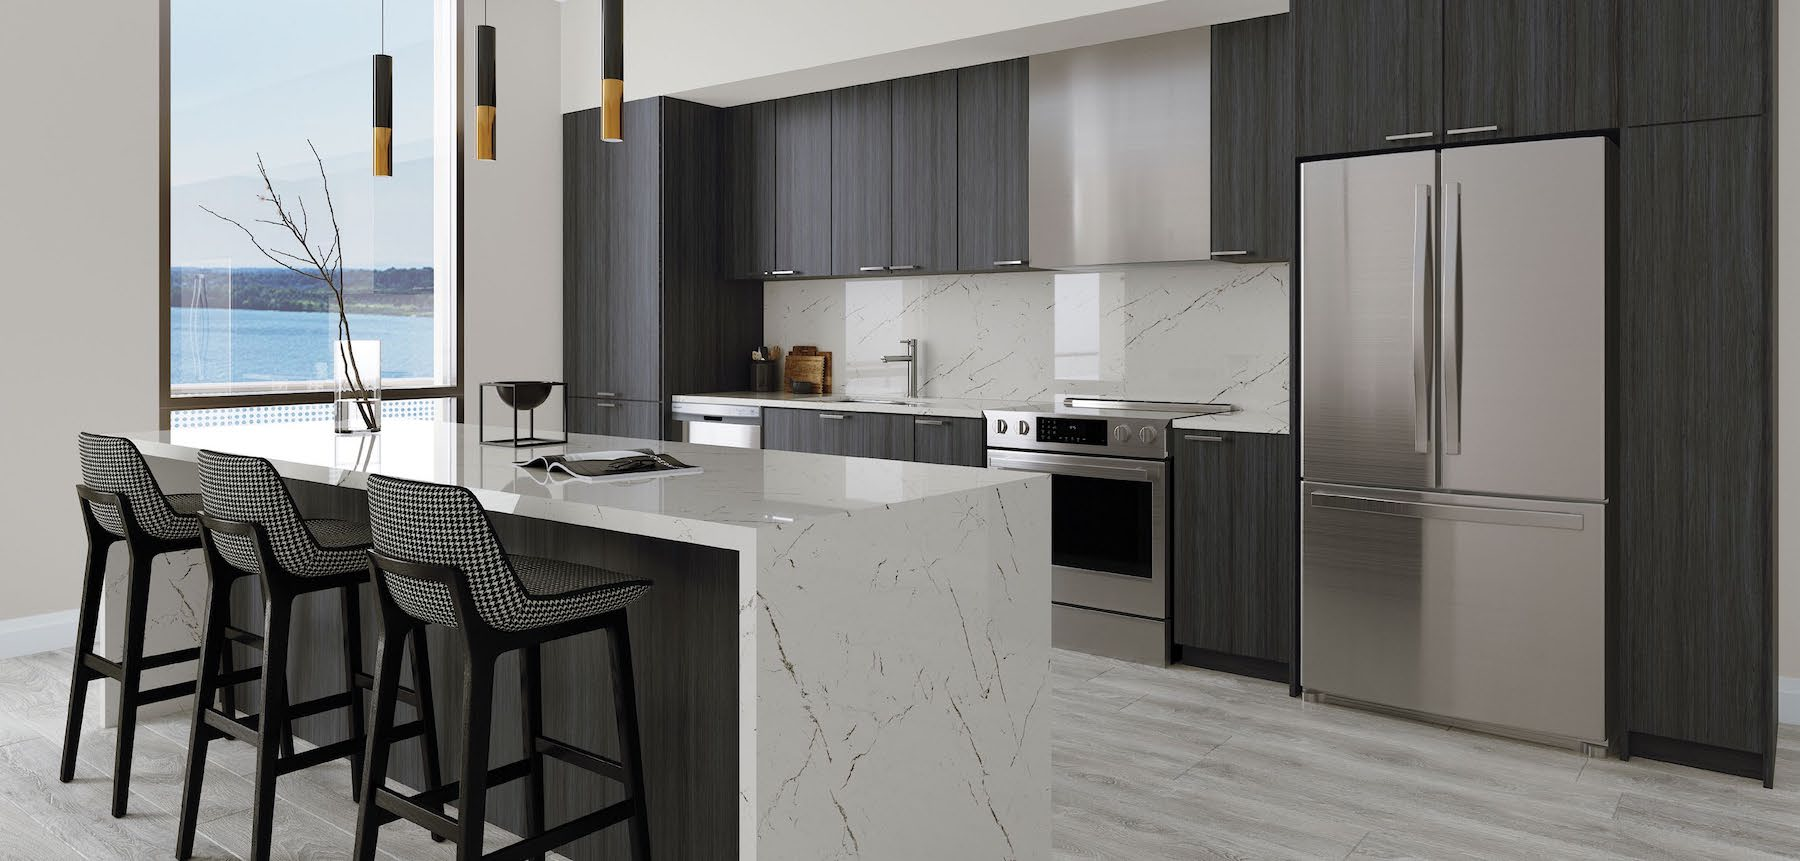 Rendering of a Suite Kitchen in the Residence at Five Points Condos